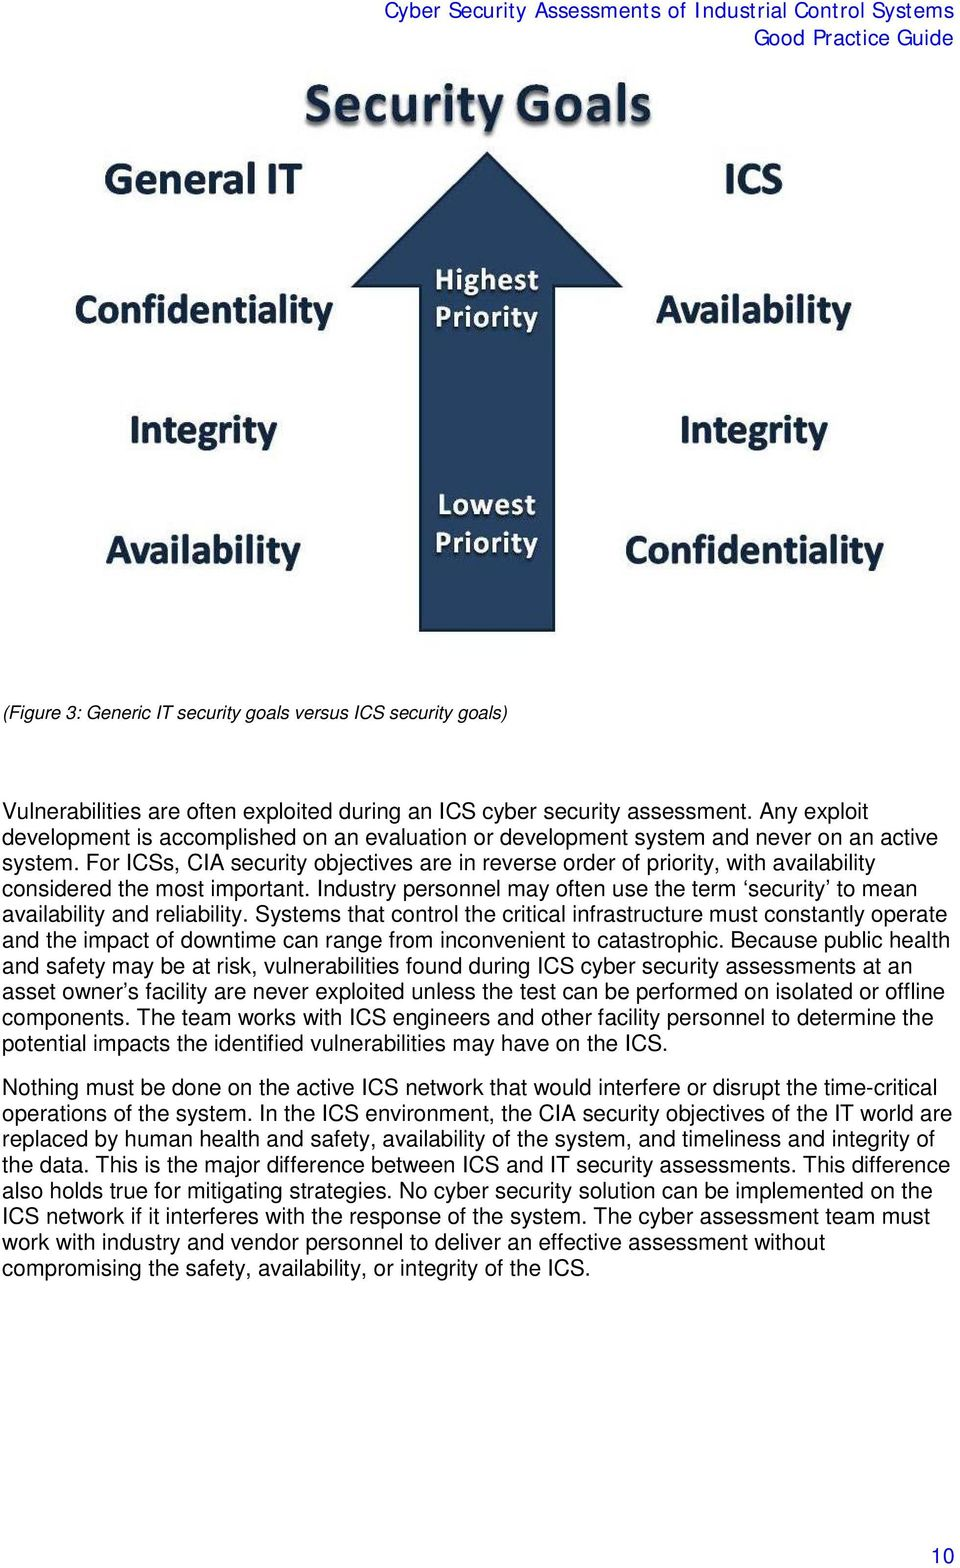 For ICSs, CIA security objectives are in reverse order of priority, with availability considered the most important.